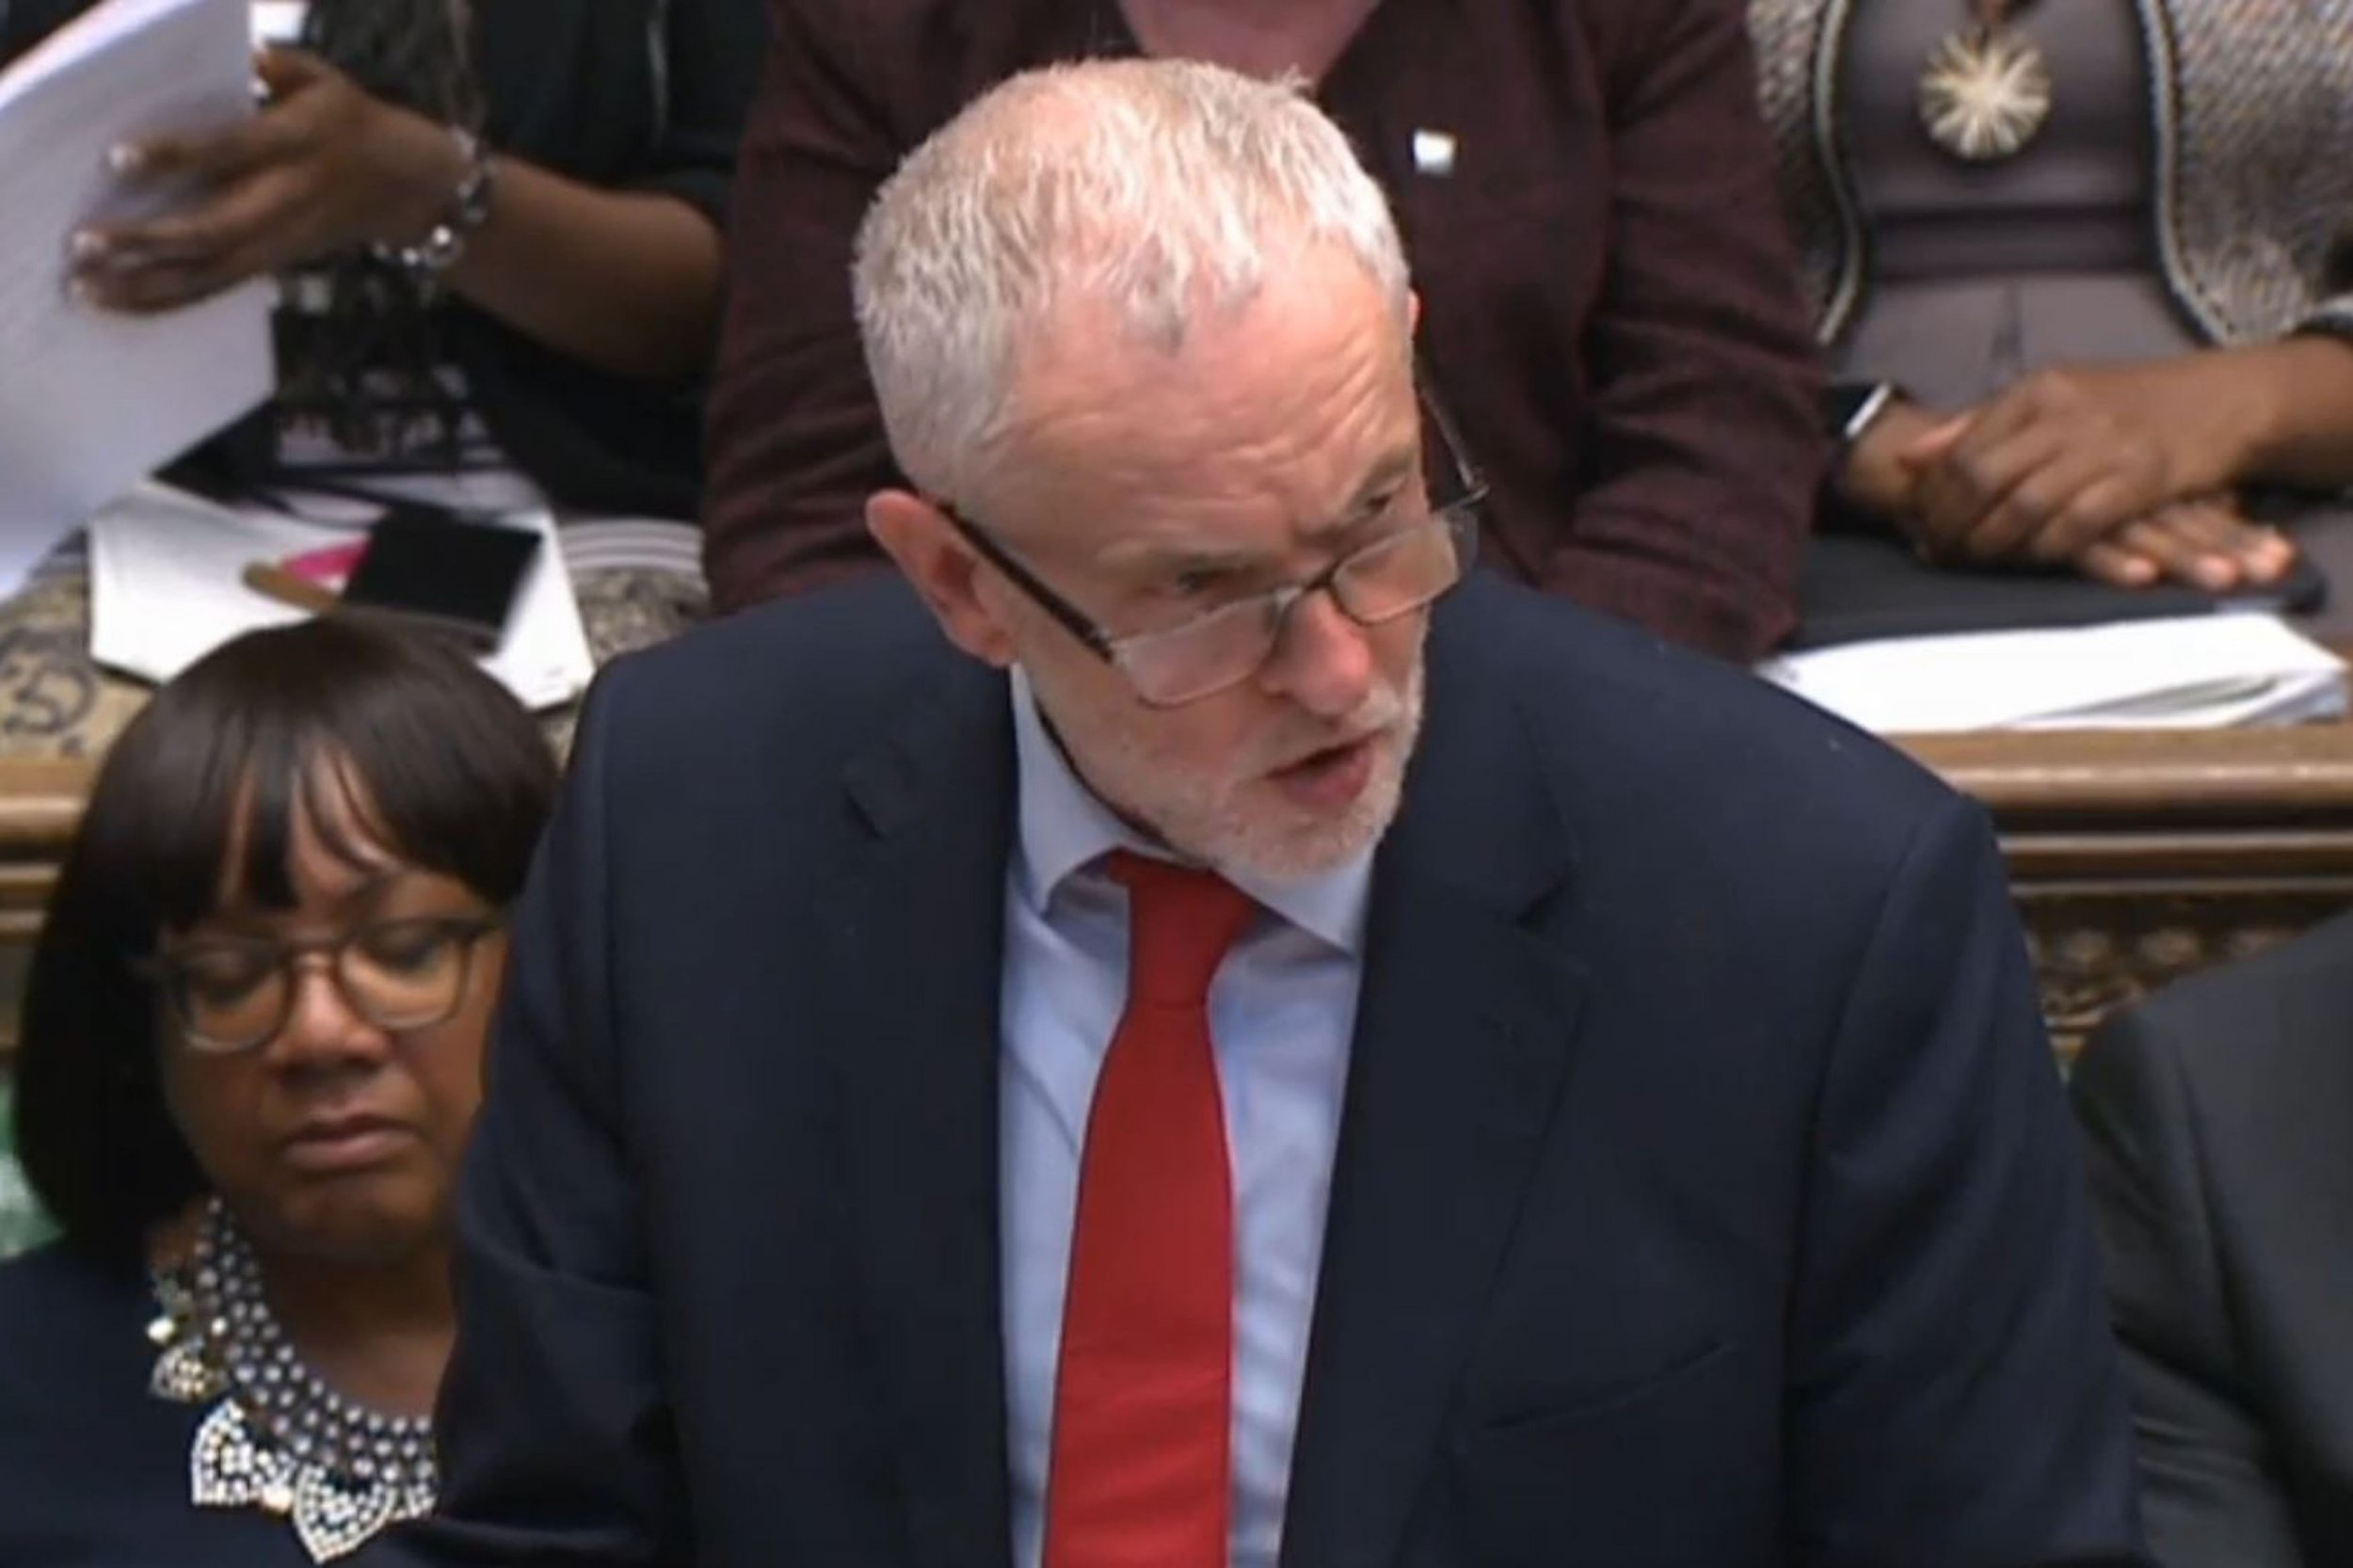 Labour leader Jeremy Corbyn speaking after Prime Minister Theresa May made a statement to MPs in the House of Commons over her decision to launch air strikes against Syria. PRESS ASSOCIATION Photo. Picture date: Wednesday July 20, 2016. See PA story POLITICS Syria. Photo credit should read: PA Wire